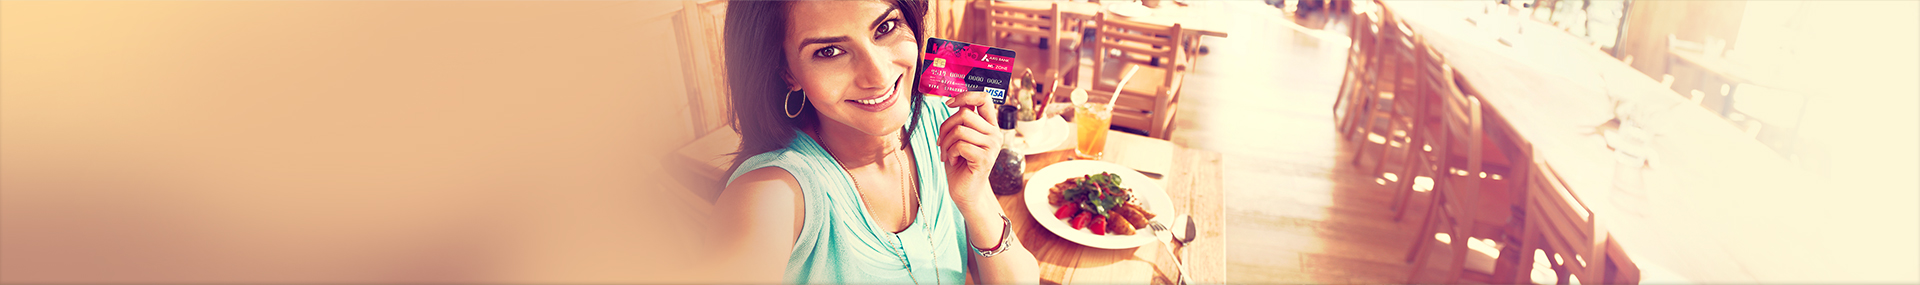 Priority Platinum Chip and Signature Debit Card